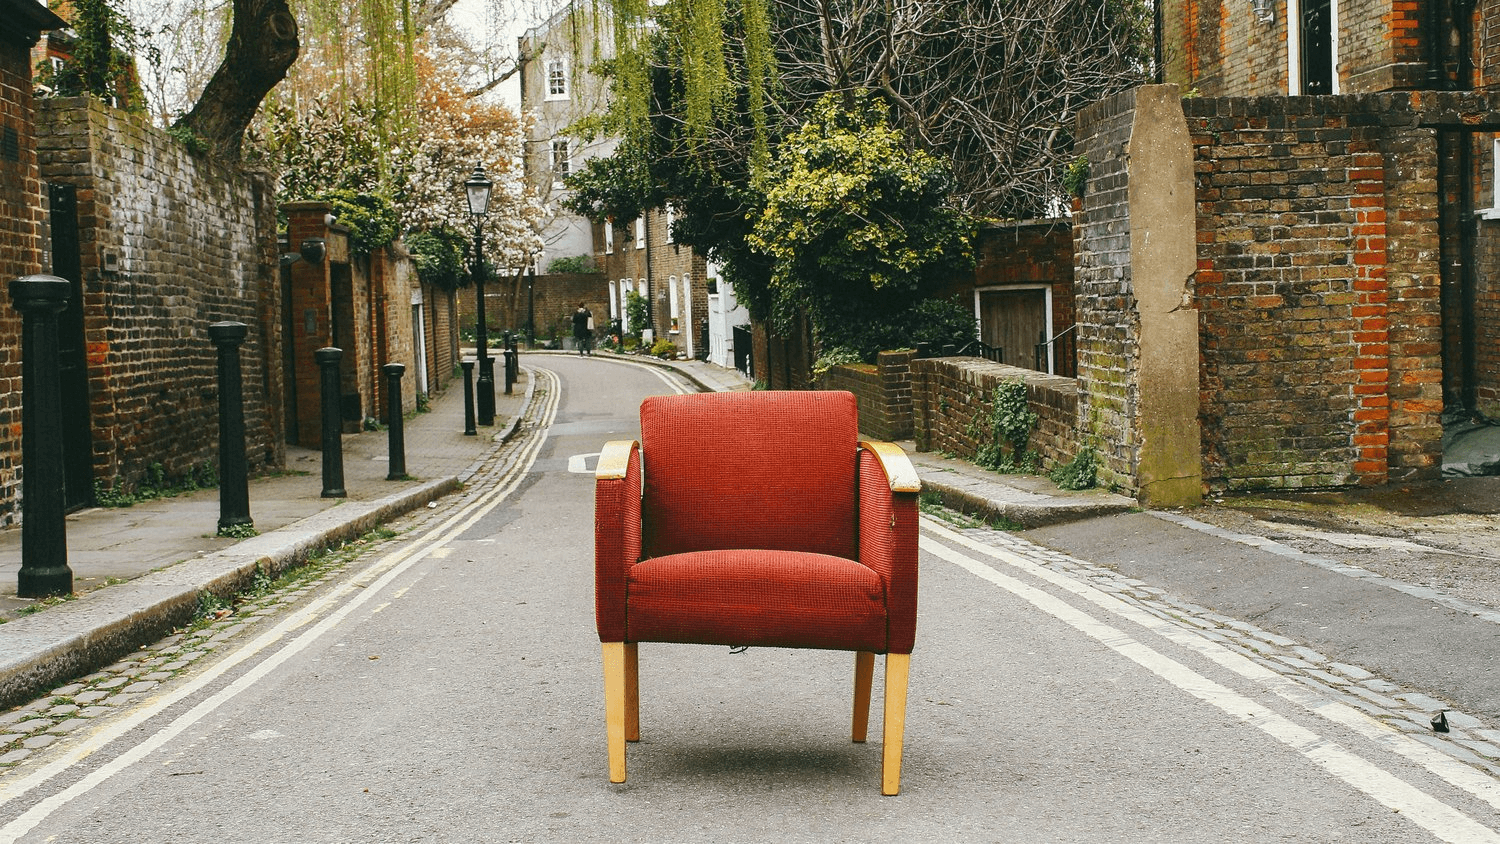 Chair for Blog Posts_eduard-militaru-88755-unsplash.jpg